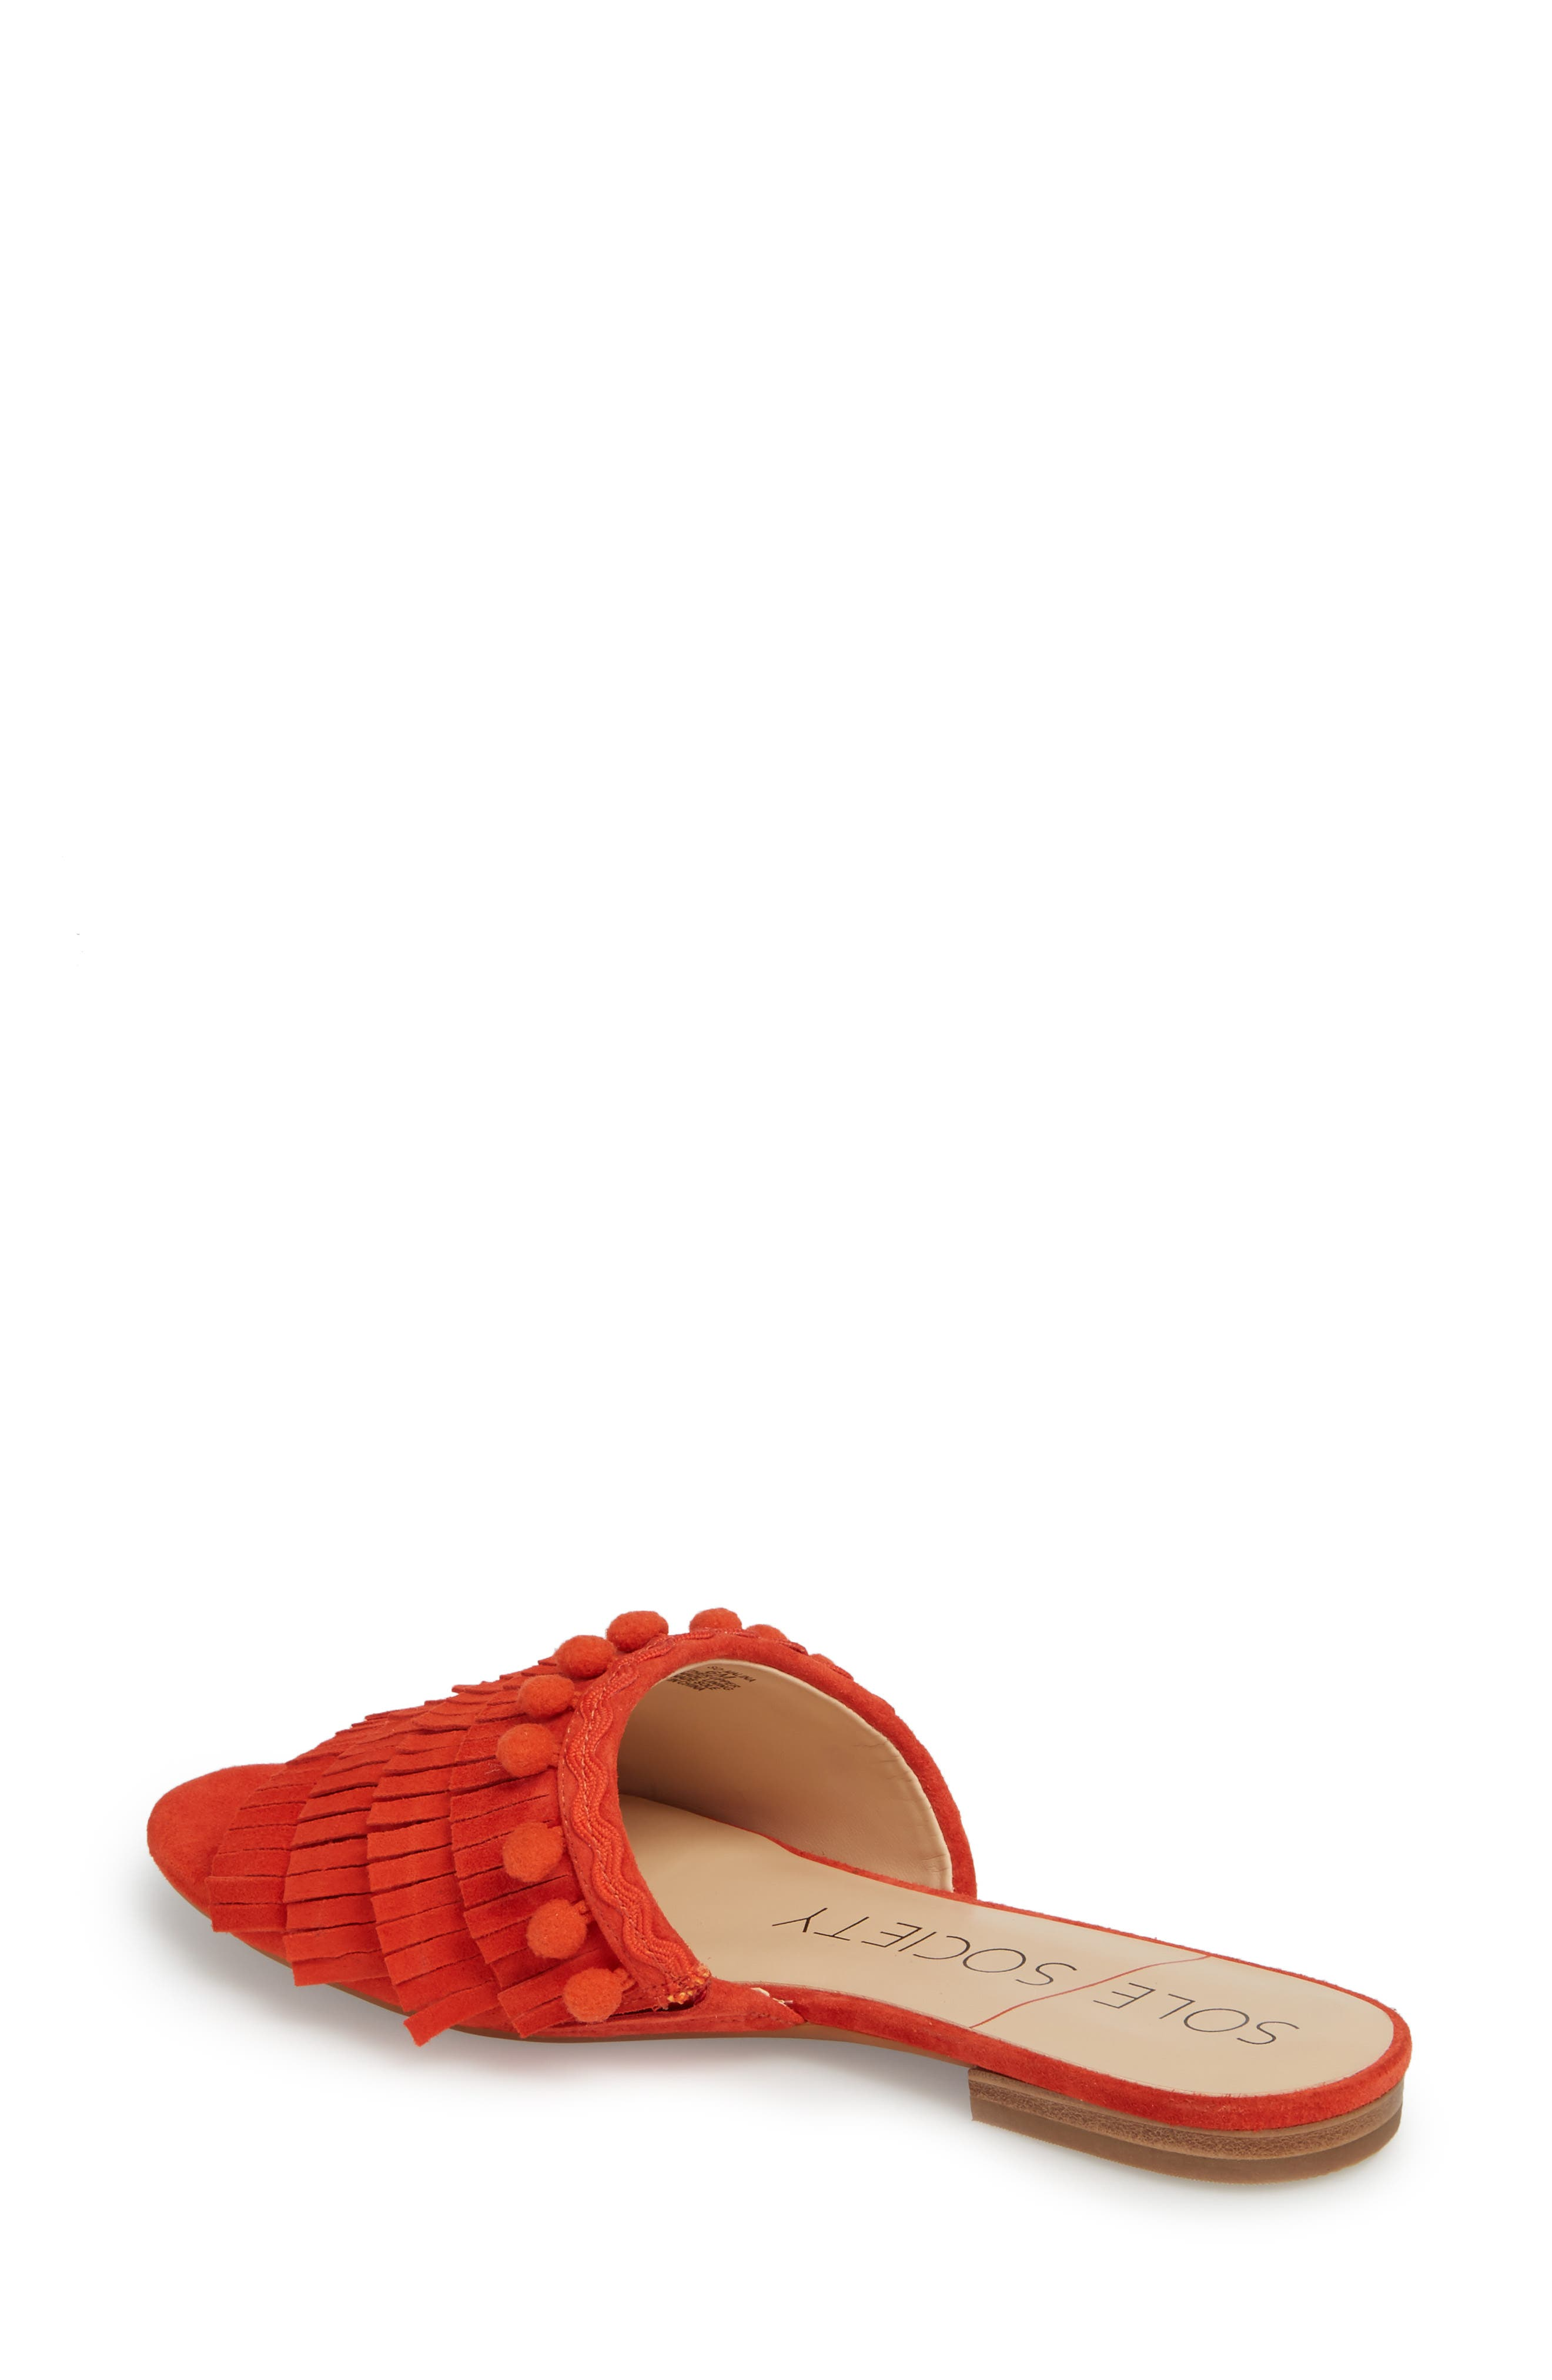 Malina Mule,                             Alternate thumbnail 2, color,                             Bright Coral Suede